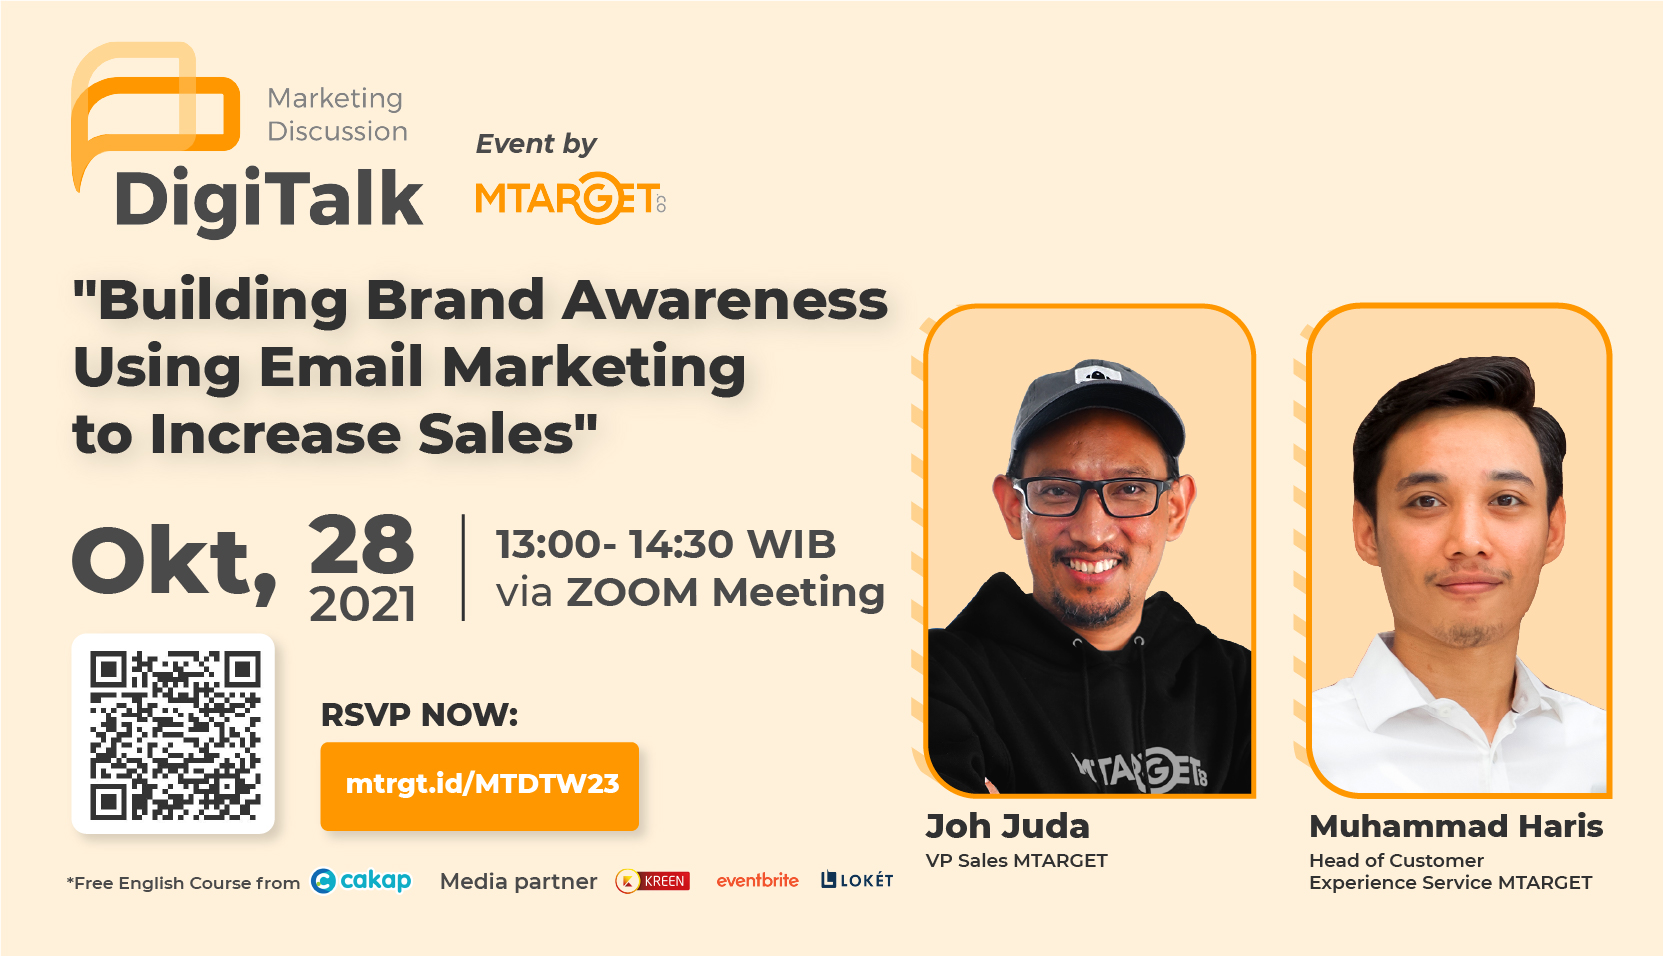 (Building Brand Awareness Using Email Marketing to Increase Sales)